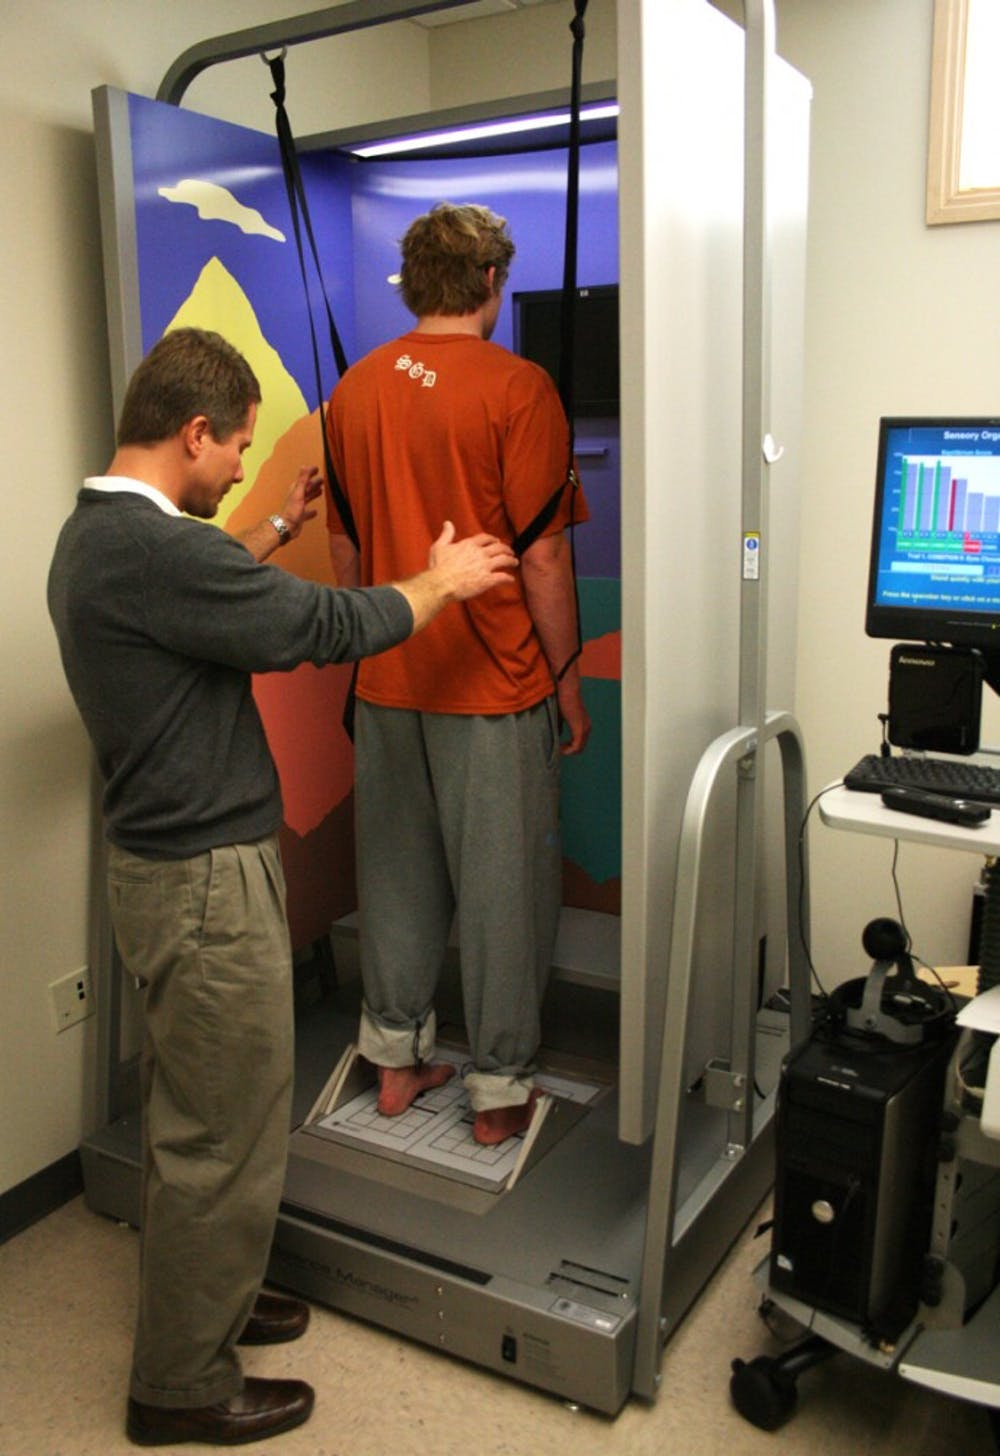 UNC's Guskiewicz a leader in concussion research